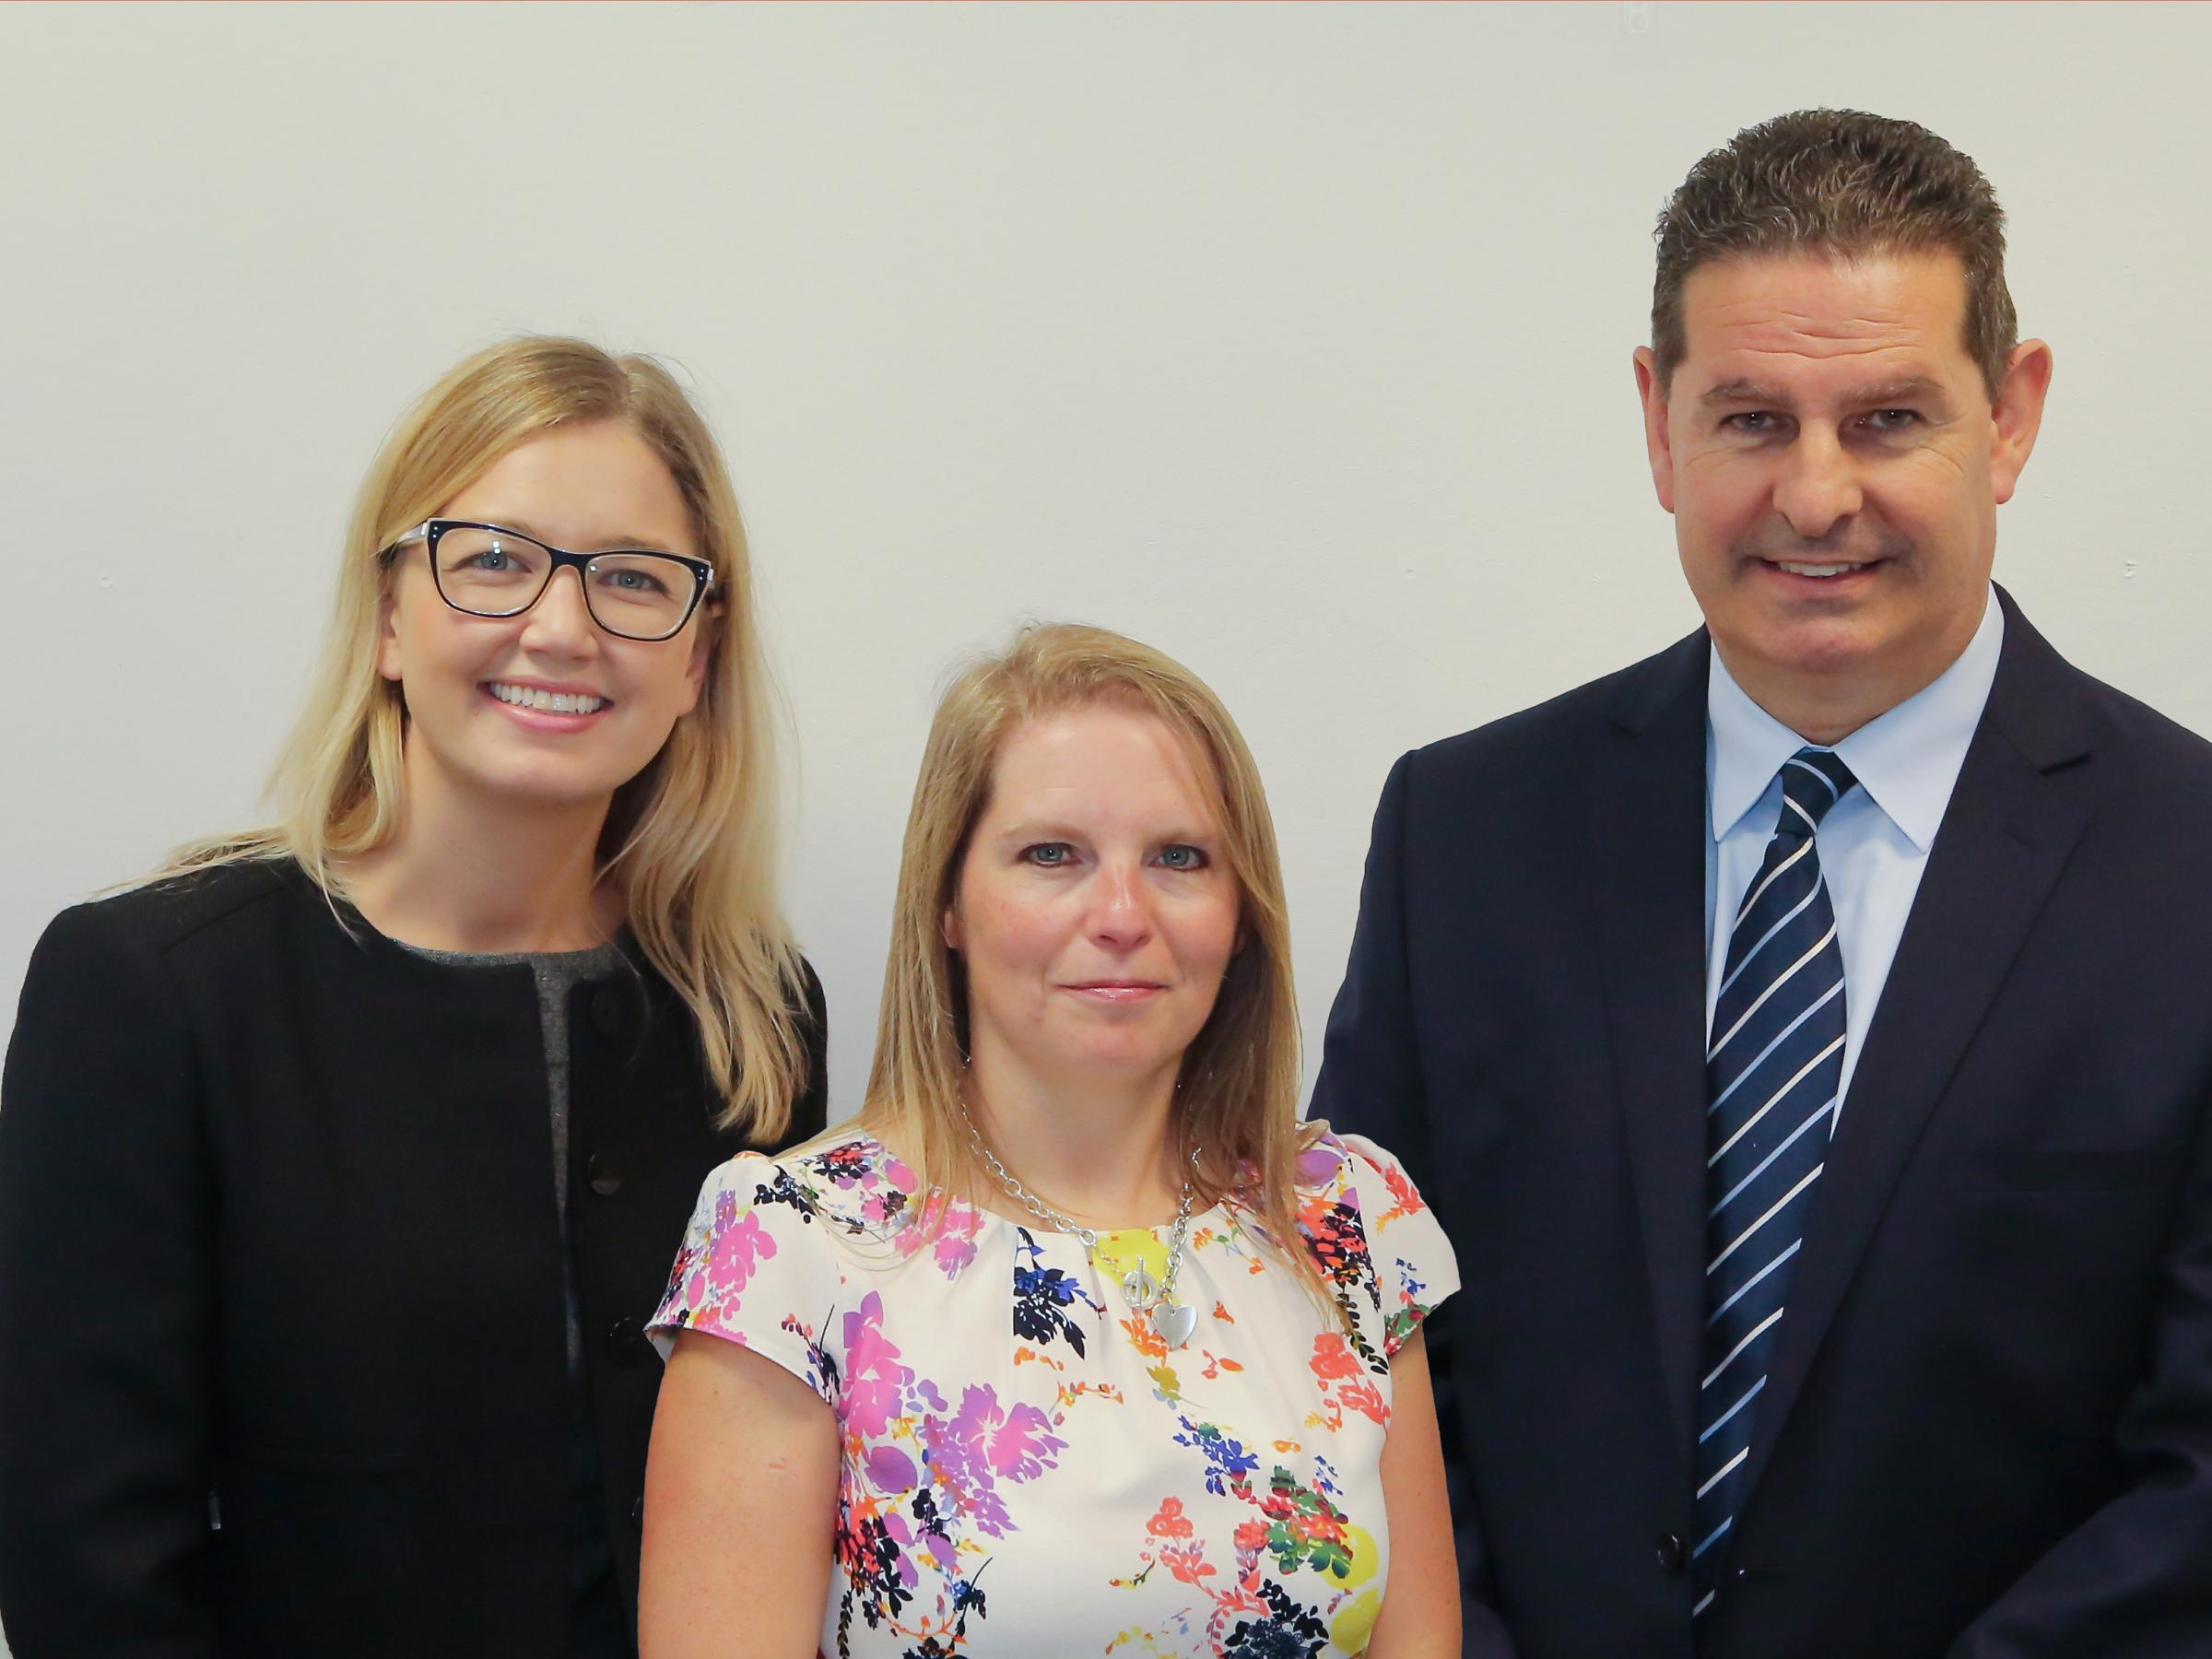 L-R: Alex Ford, VP Marketing and Operations, Encompass Corporation; Kerry Sharp, Head of Scottish Investment Bank; Roger Carson, Co-Founder & Global Financial Sales Director, Encompass Corporation